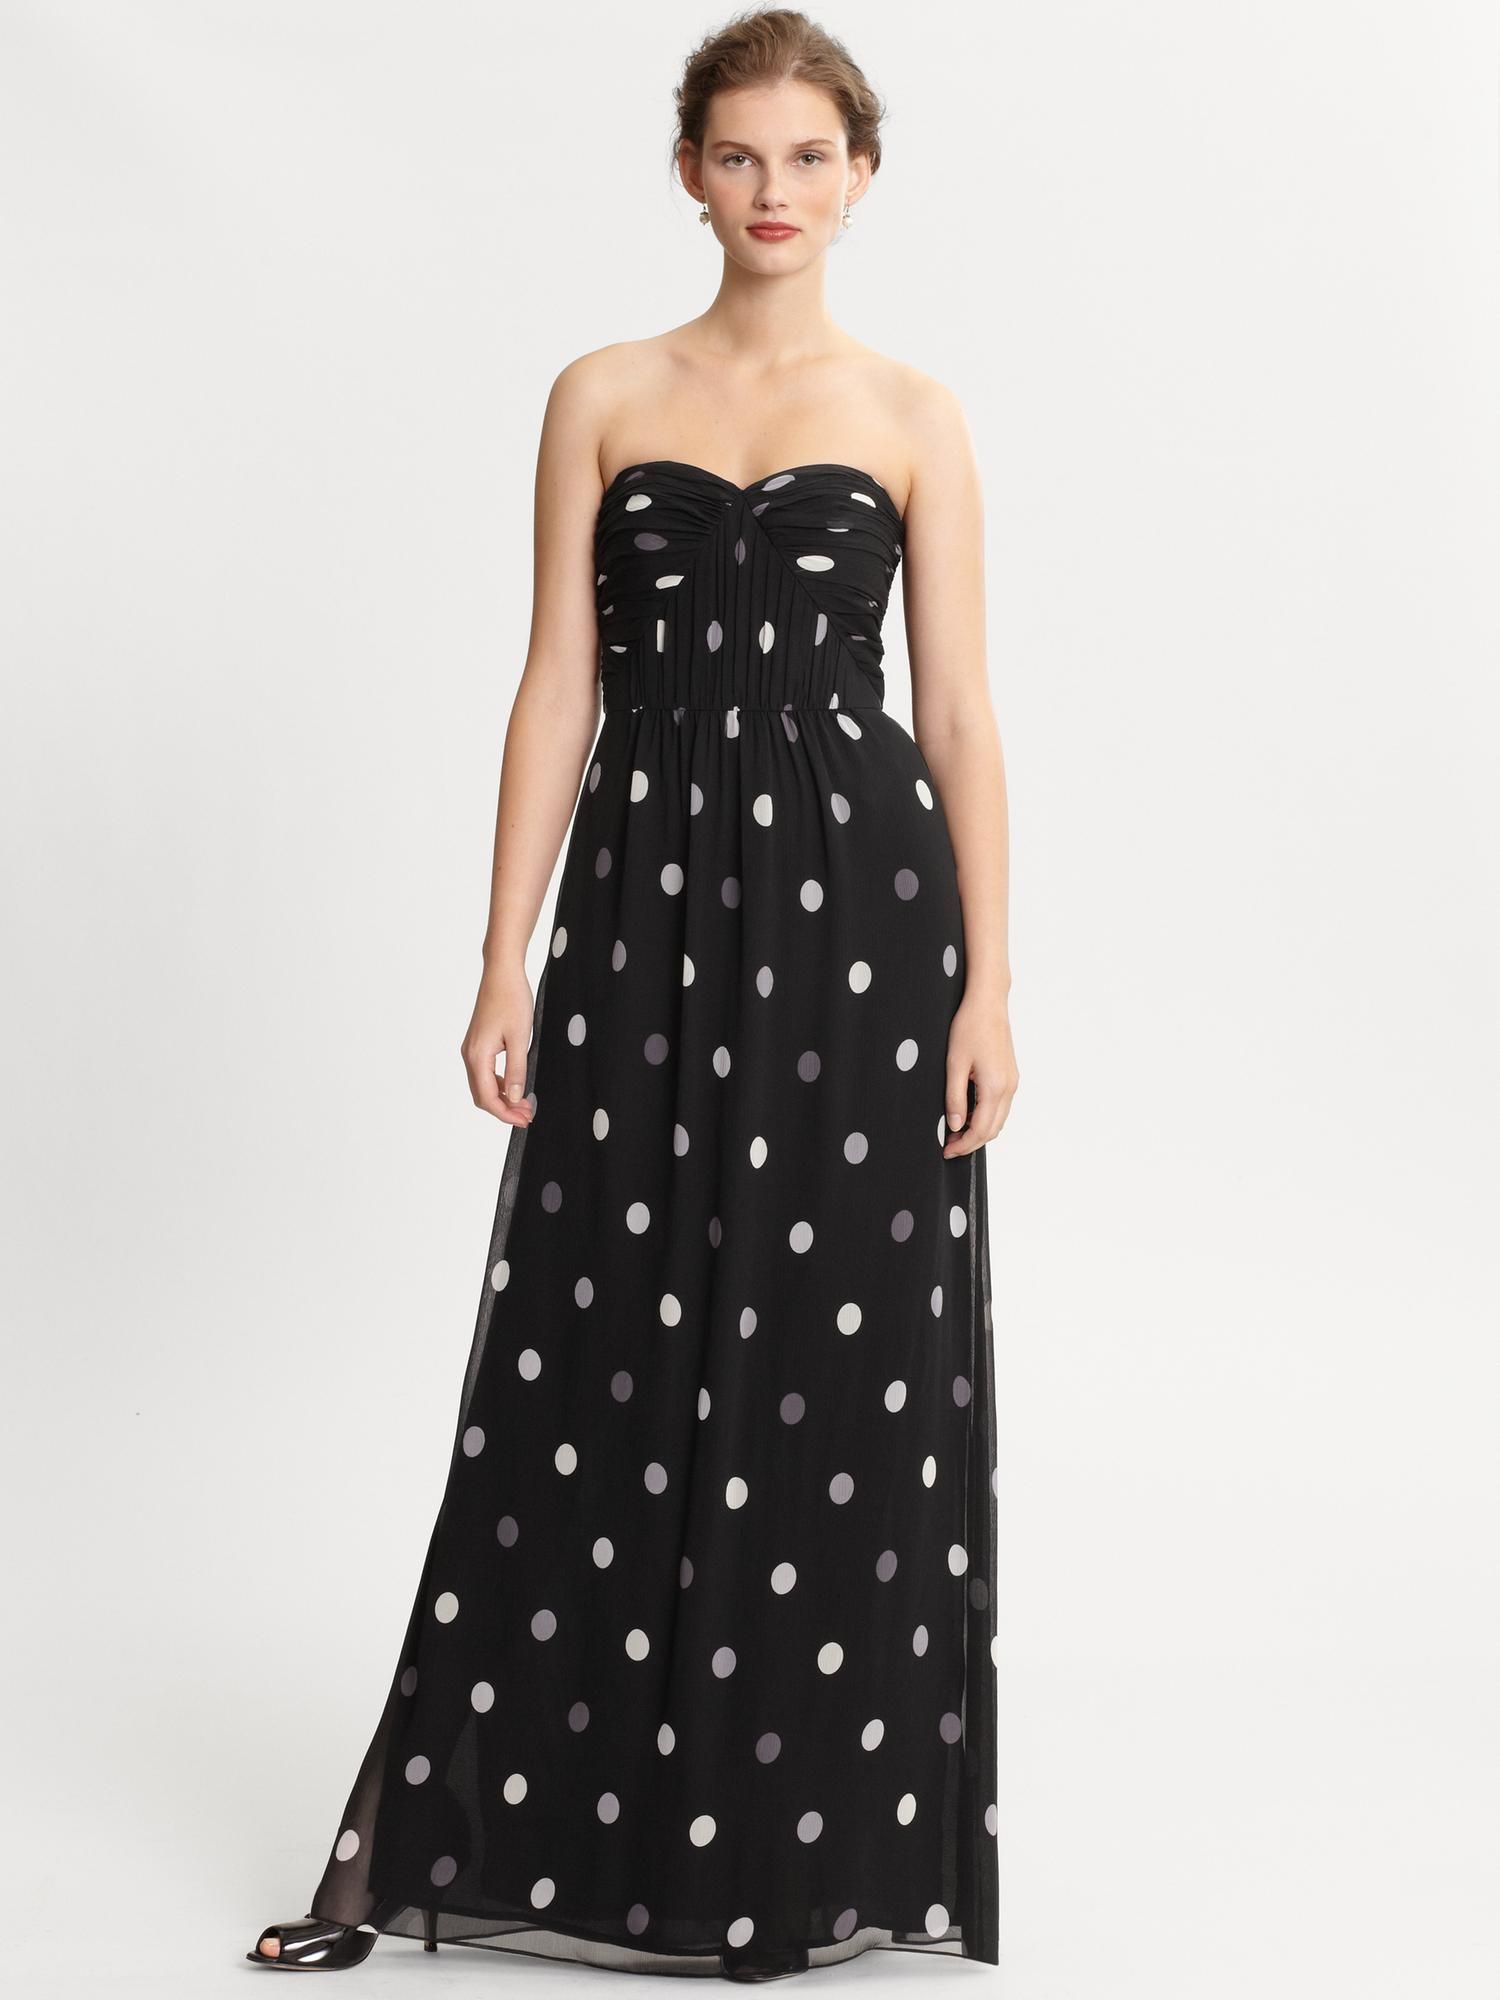 Summer dresses to wear to a wedding  I would love this for a bridesmaid dress  Bride  Groom